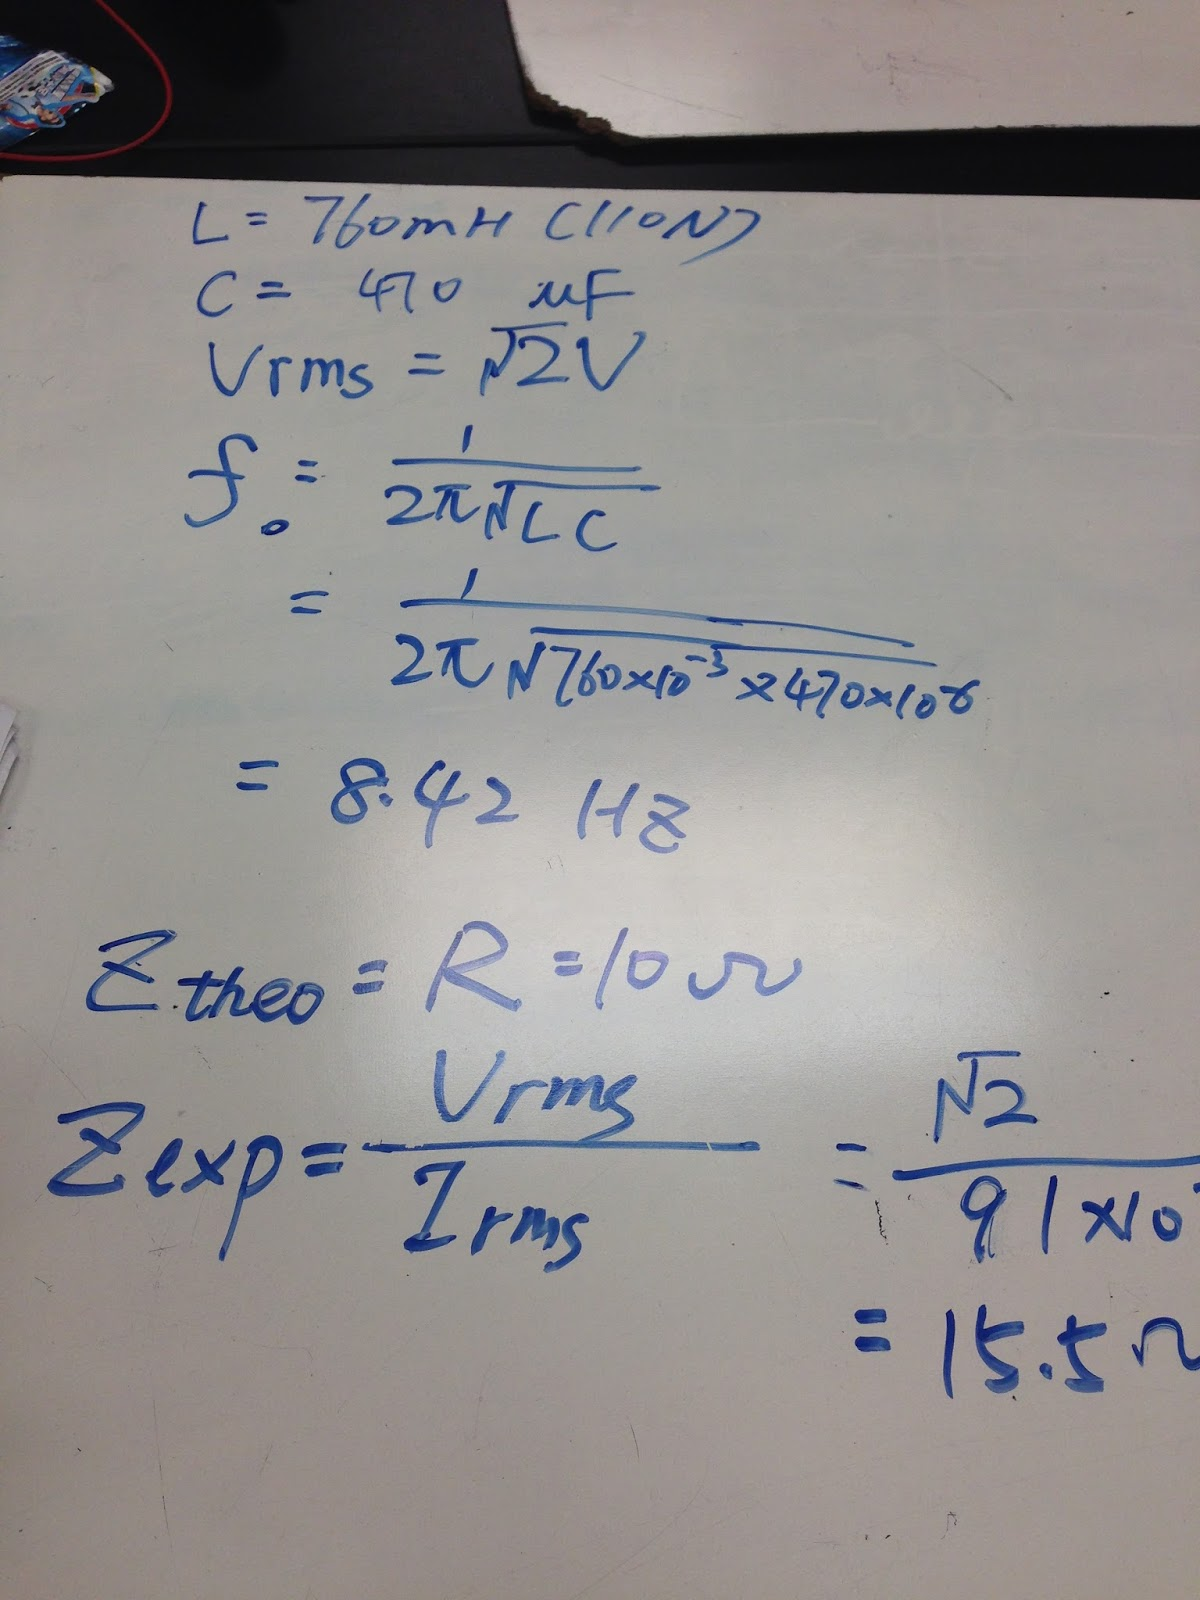 Physics 4b Cliu June 2015 Resistorinductor Circuits Reactance And Impedance Inductive The Experiment Was Repeated With An Rlc Circuit By Connecting A Resistor Inductor Capacitor To Results In White Board On